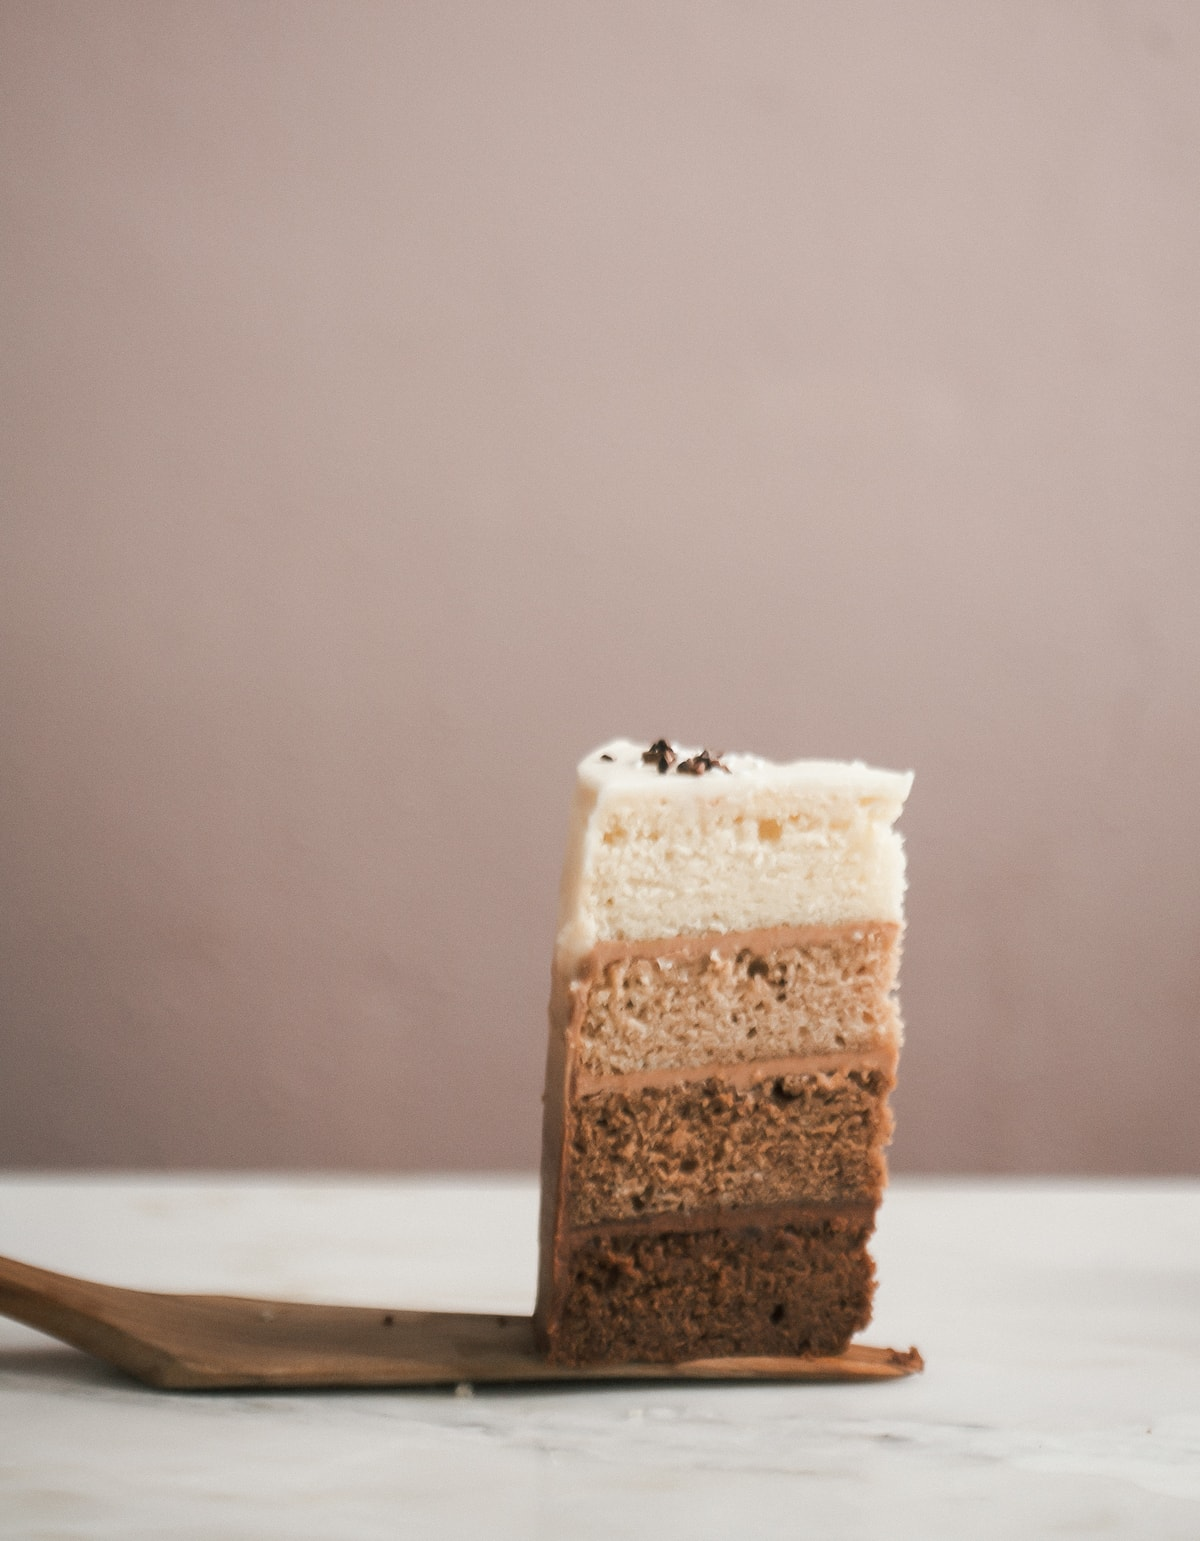 Ombre Chocolate Cake with Mexican Chocolate Frosting